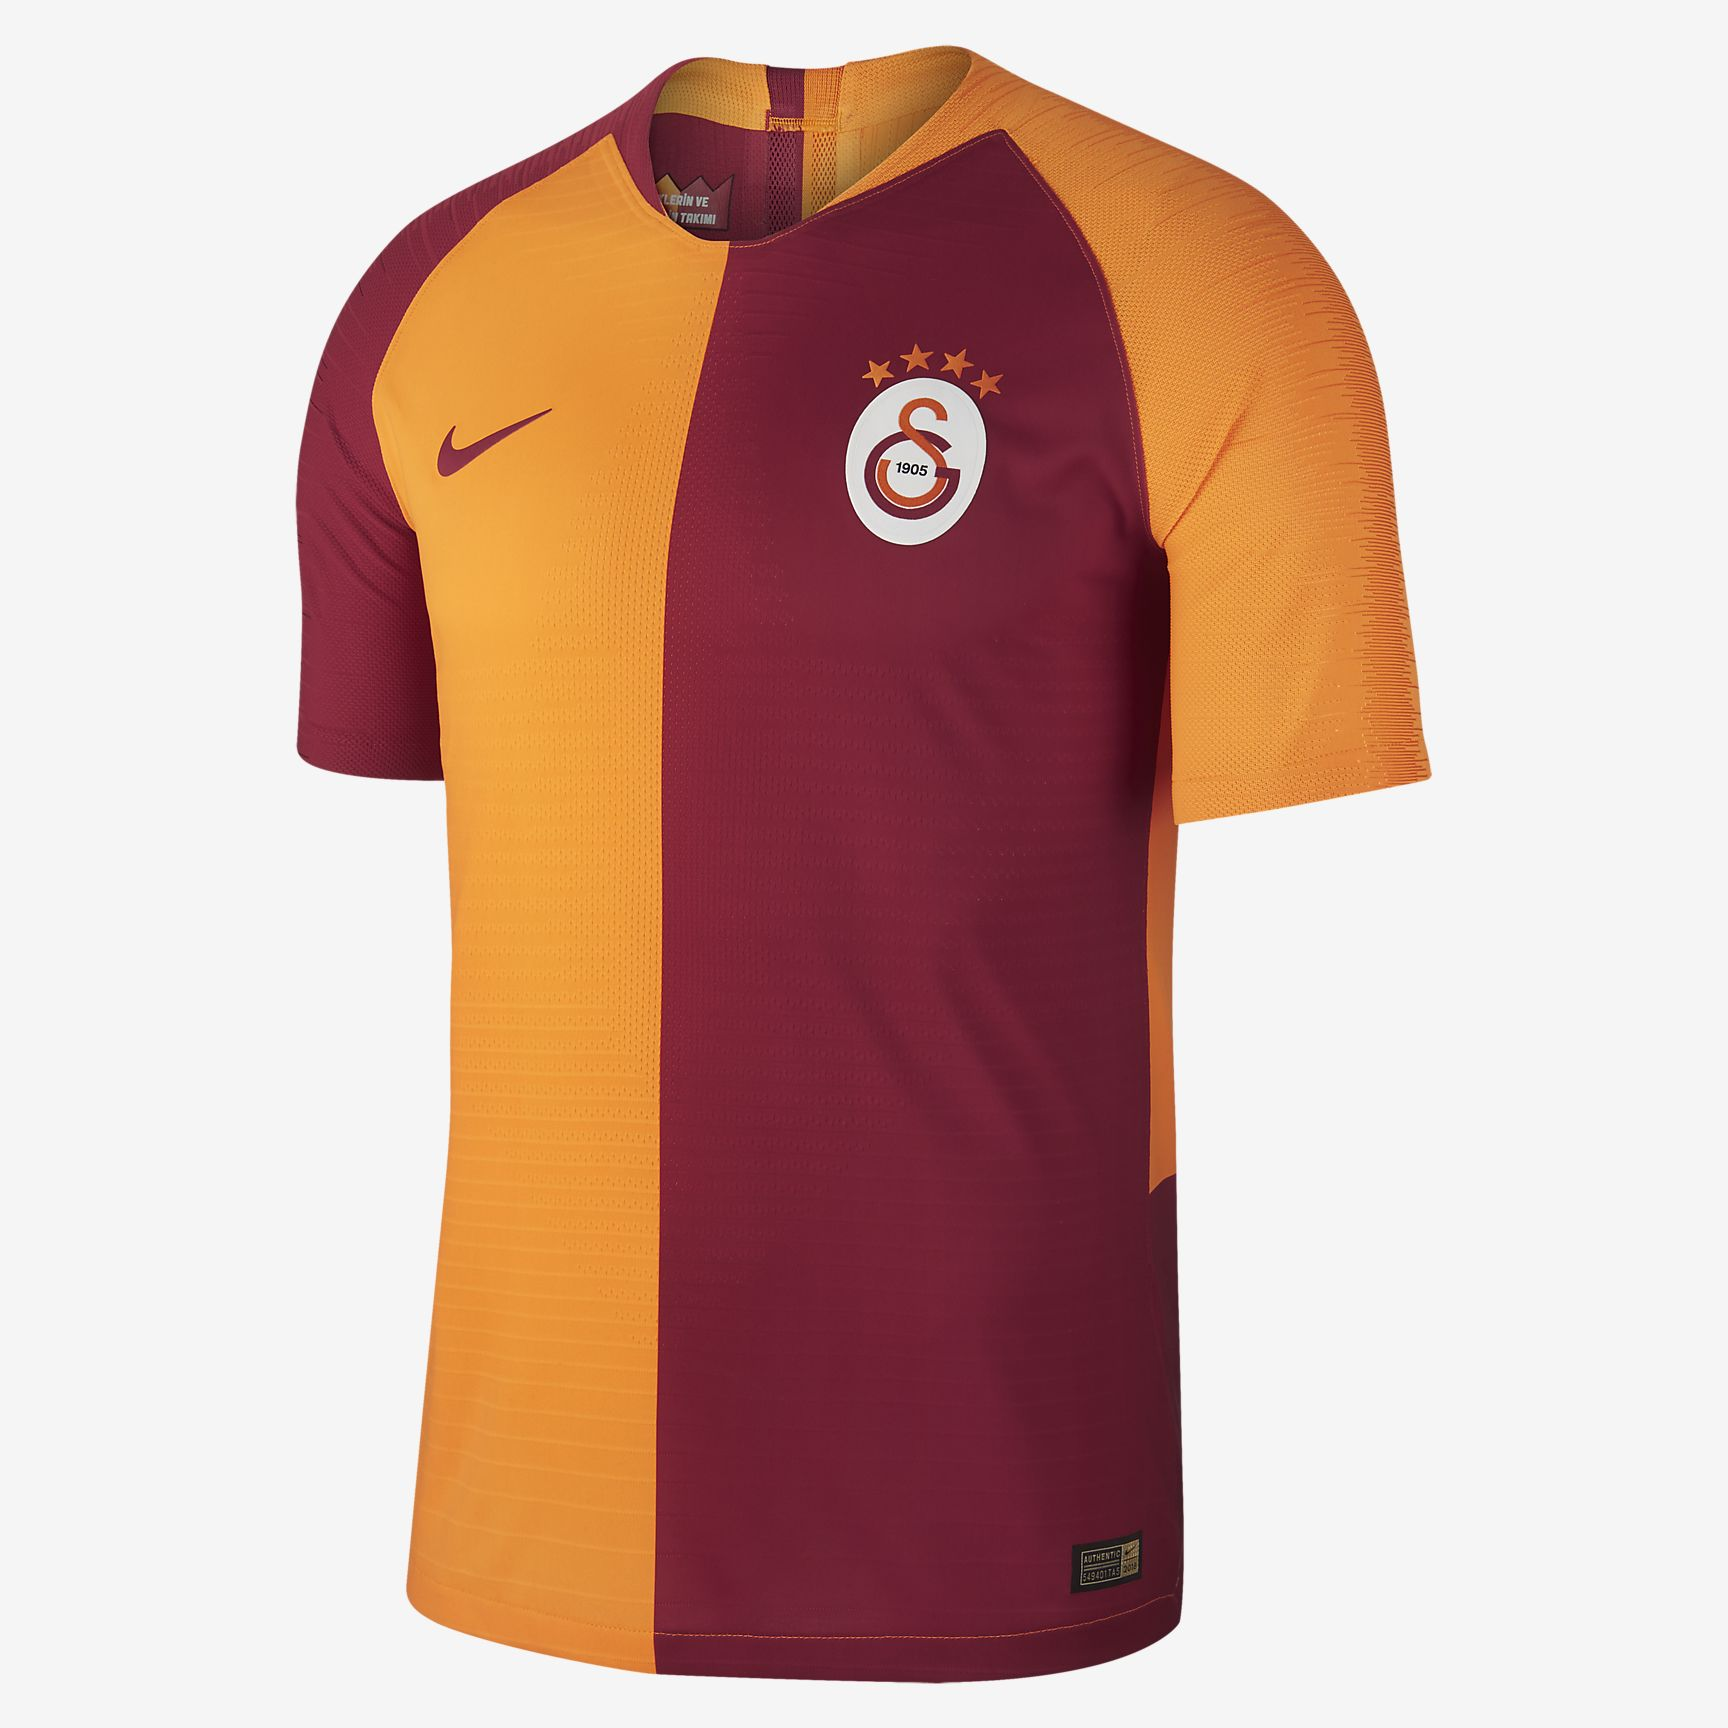 https://c.static-nike.com/a/images/t_PDP_1728_v1/f_auto/wccravyeduhgjikuahzy/2018-19-galatasaray-sk-vapor-match-home-football-shirt-gC8crp.jpg